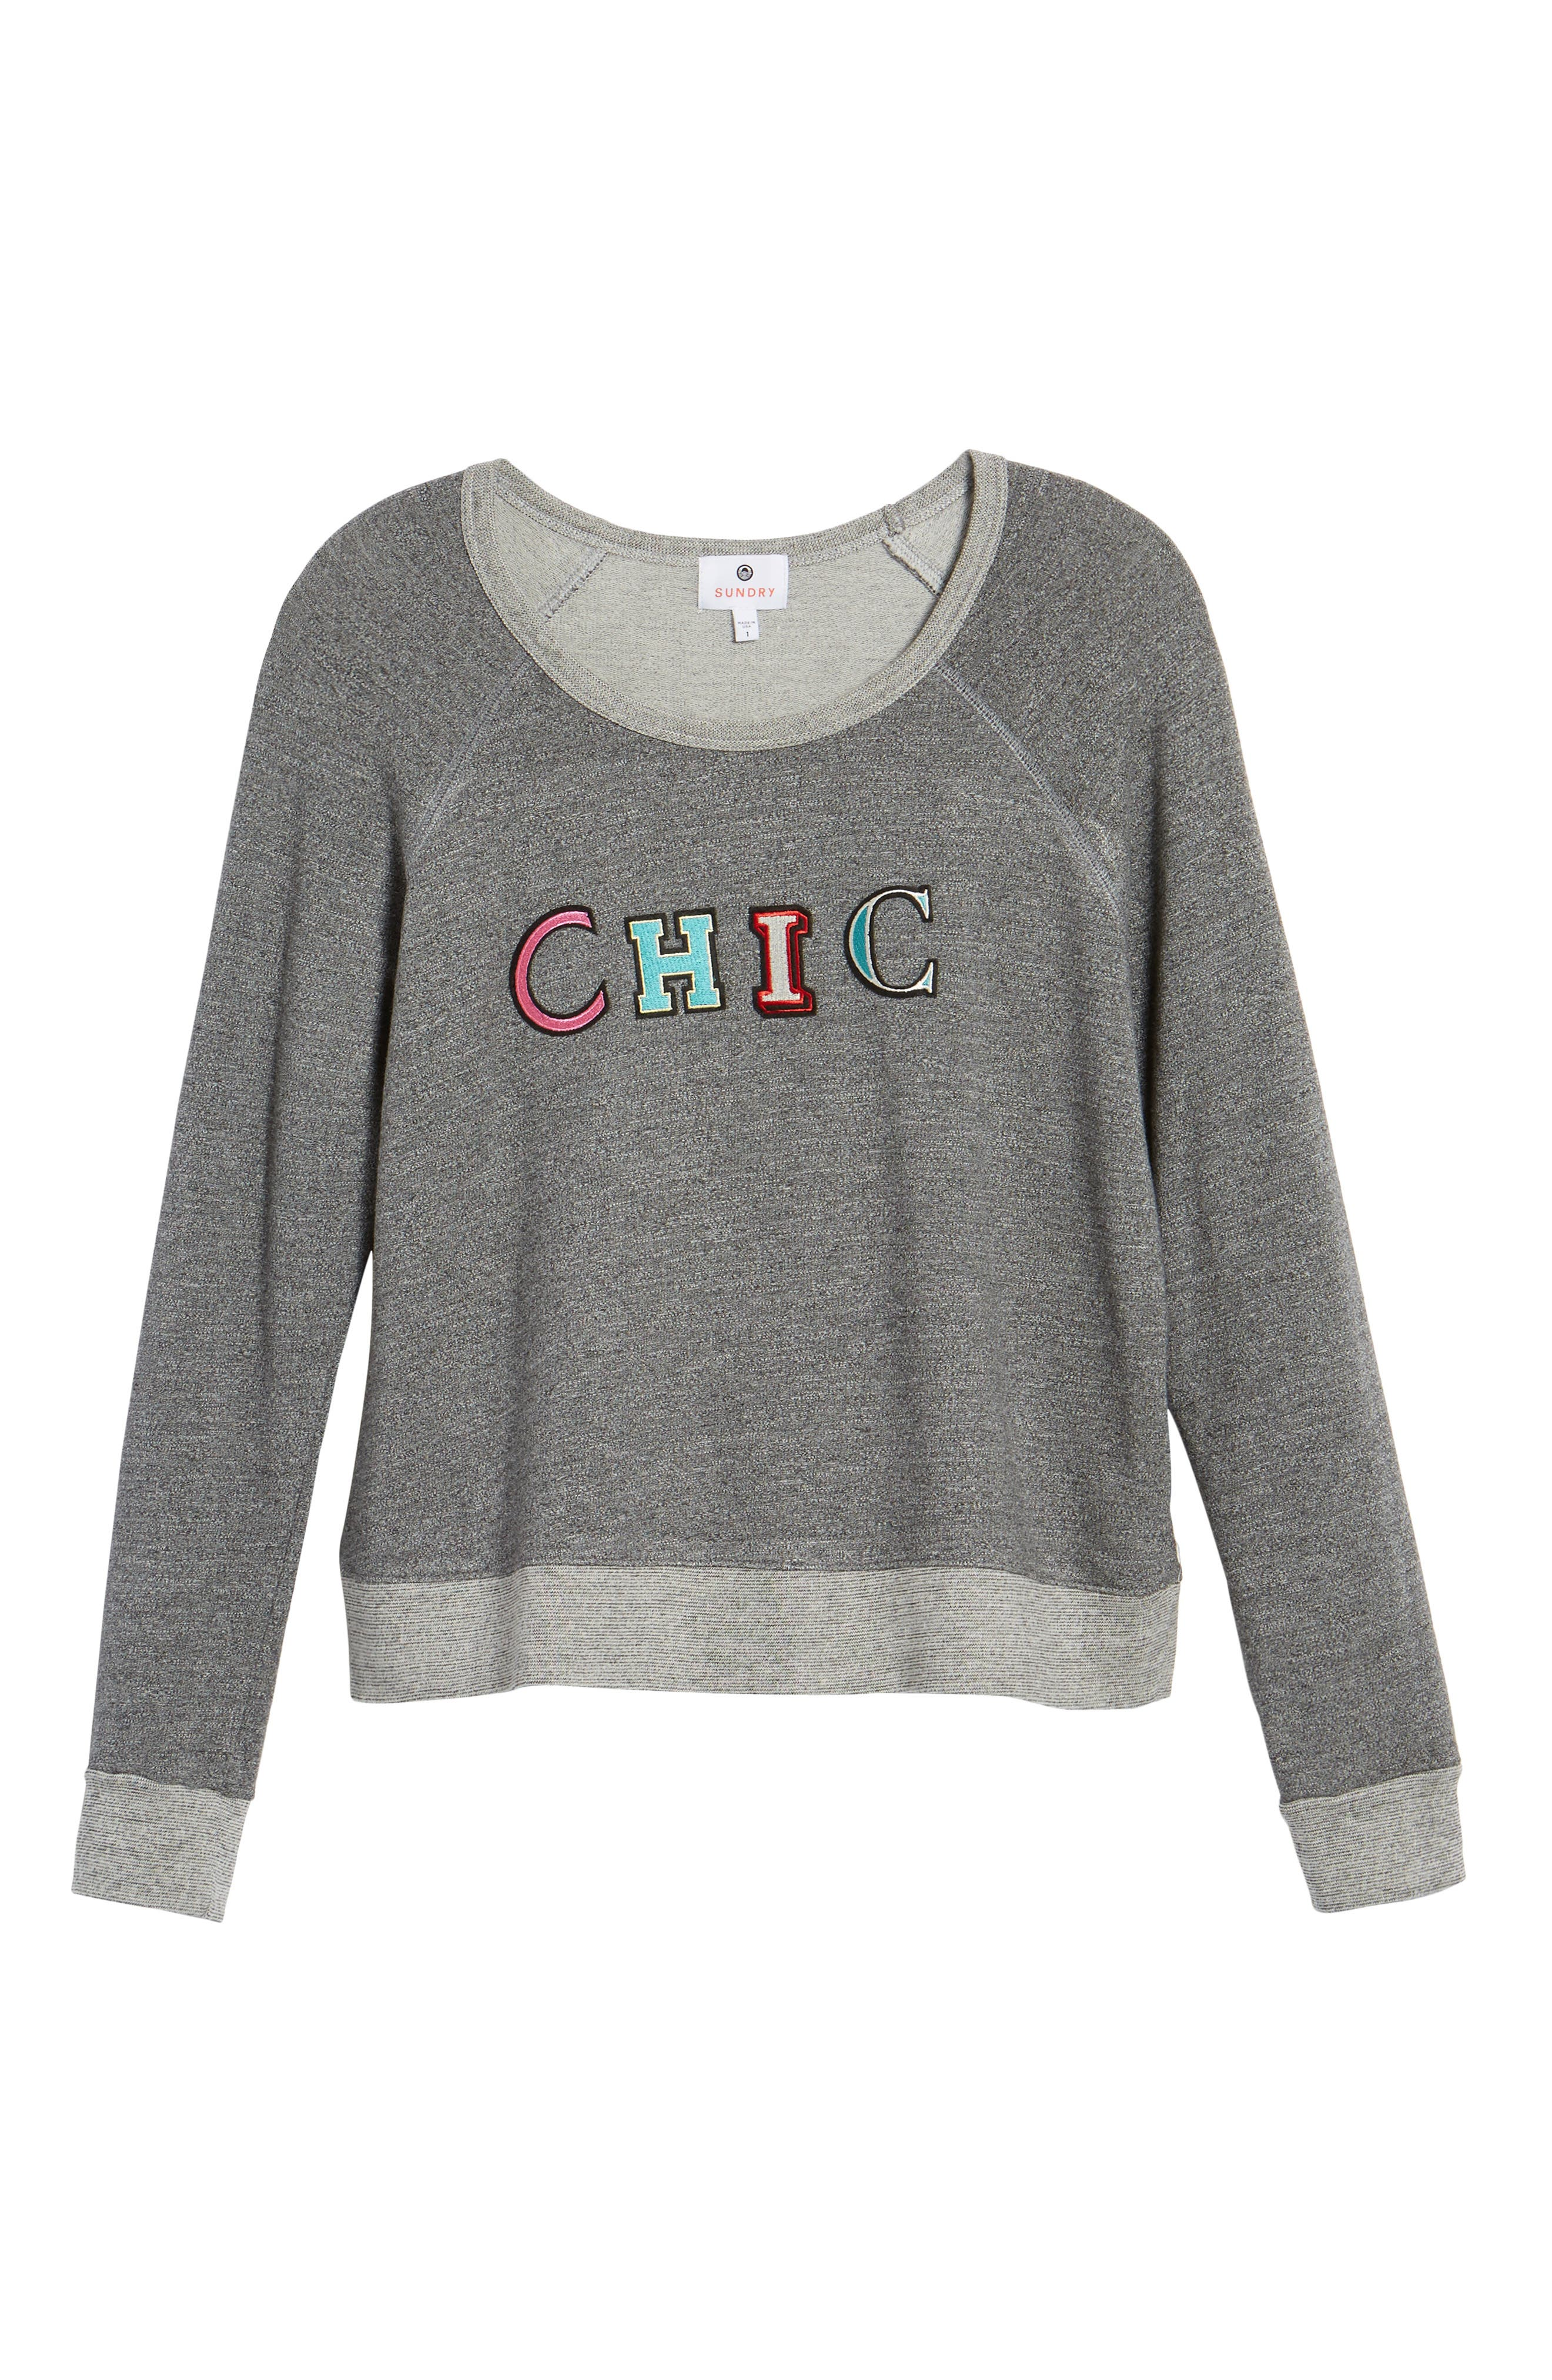 Chic Crop Sweatshirt,                             Alternate thumbnail 6, color,                             Heather Grey